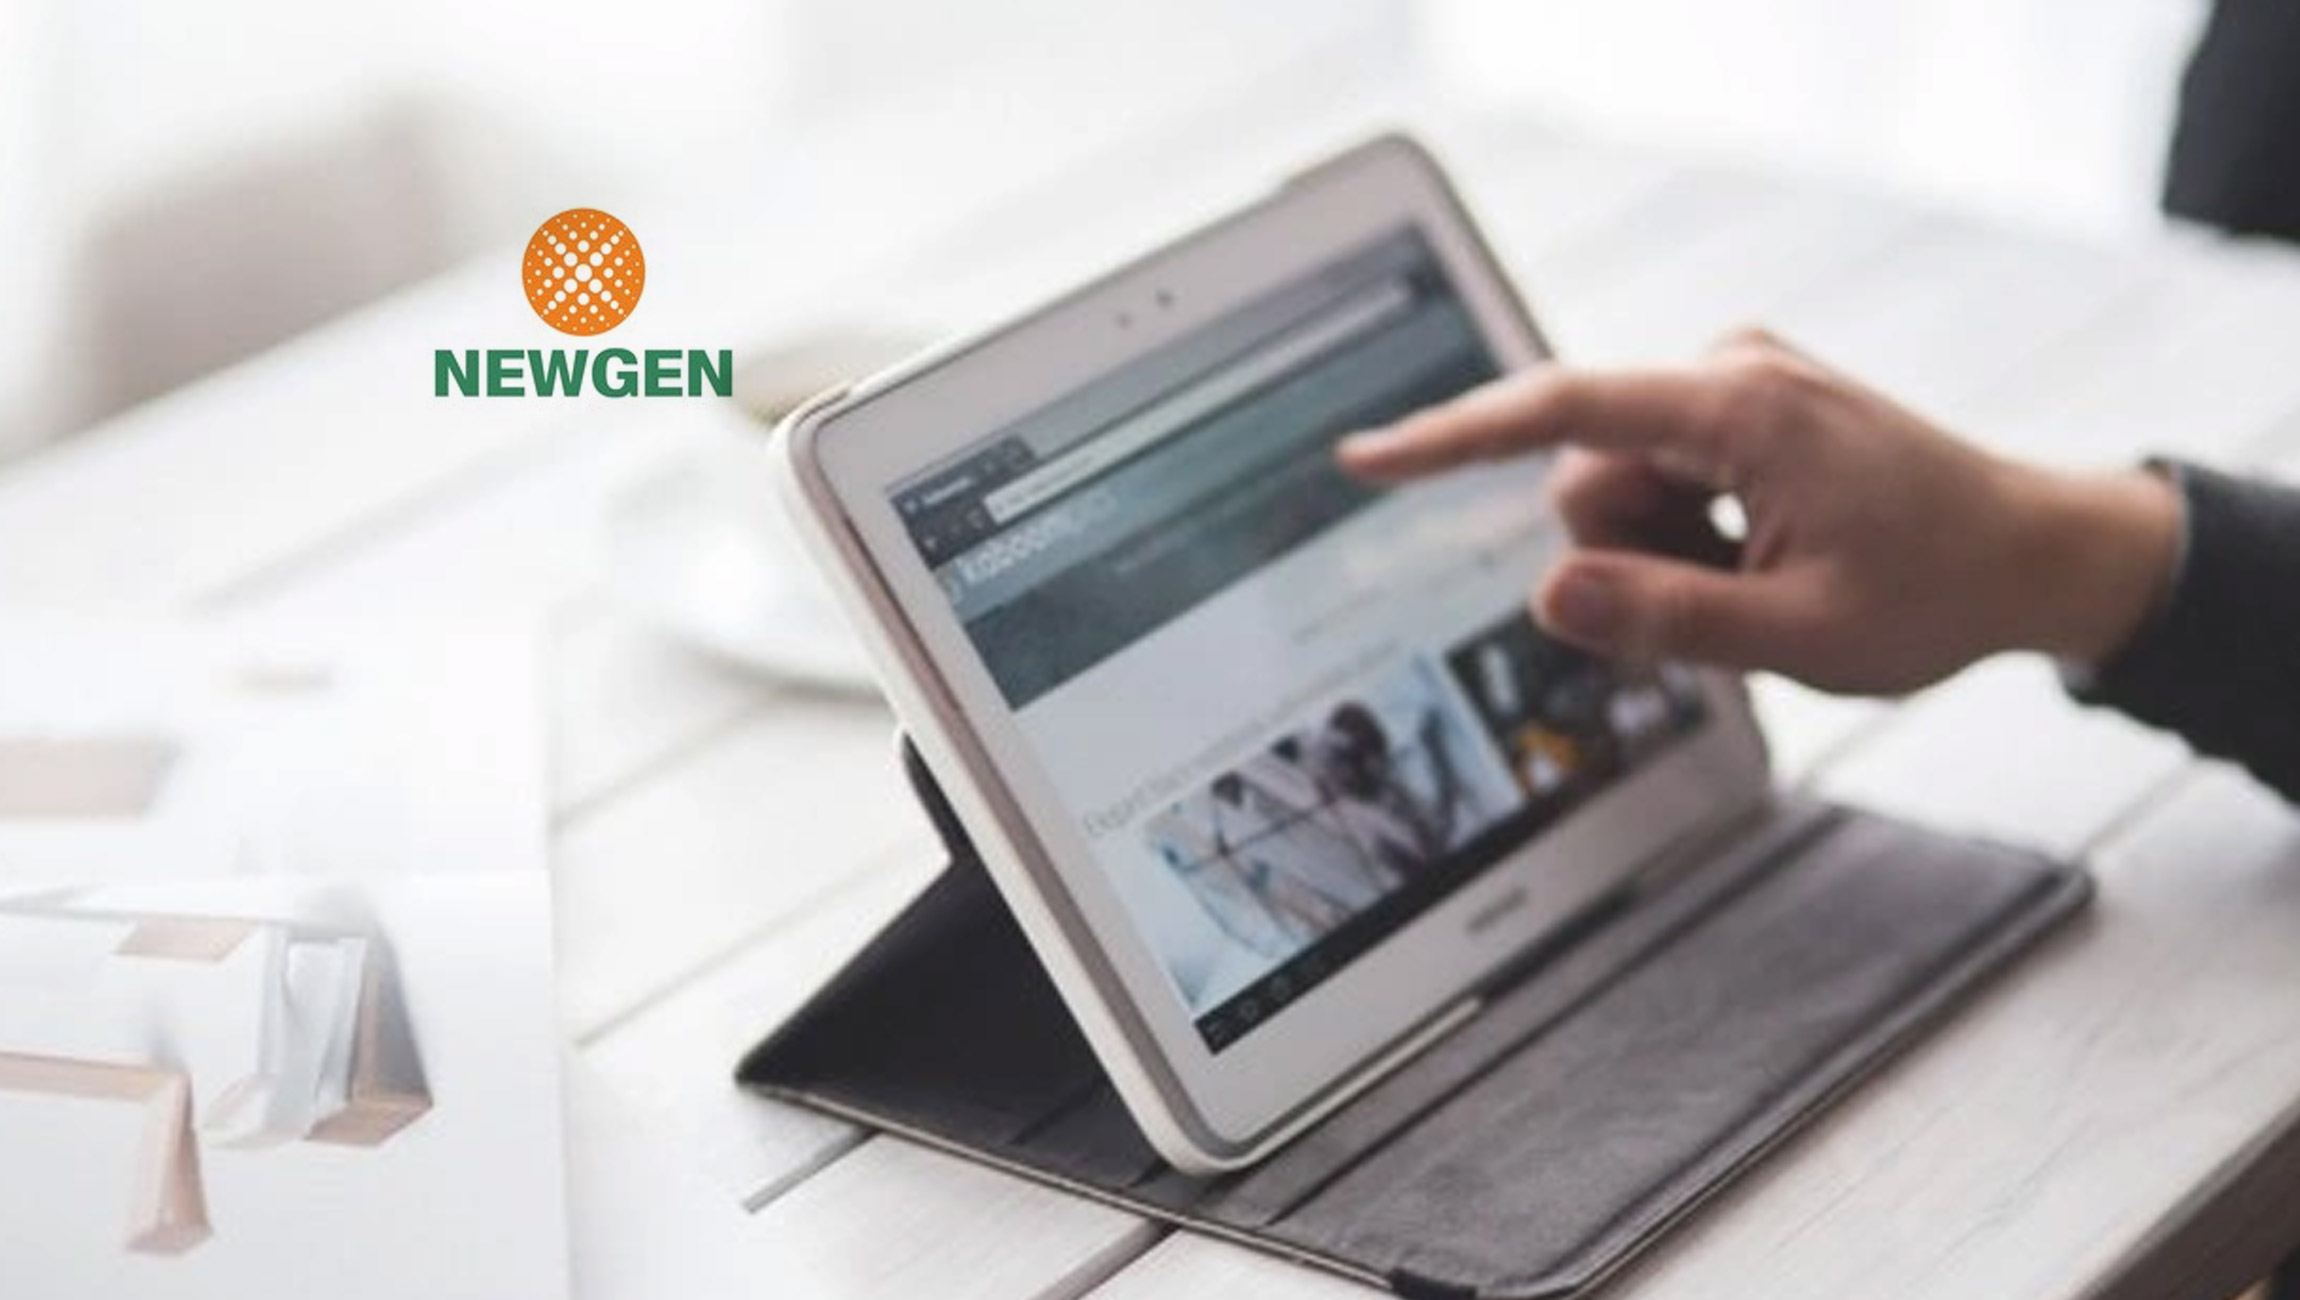 Newgen Recognized in 2021 Gartner Magic Quadrant for Enterprise Low-Code Application Platforms for Second Year in a Row